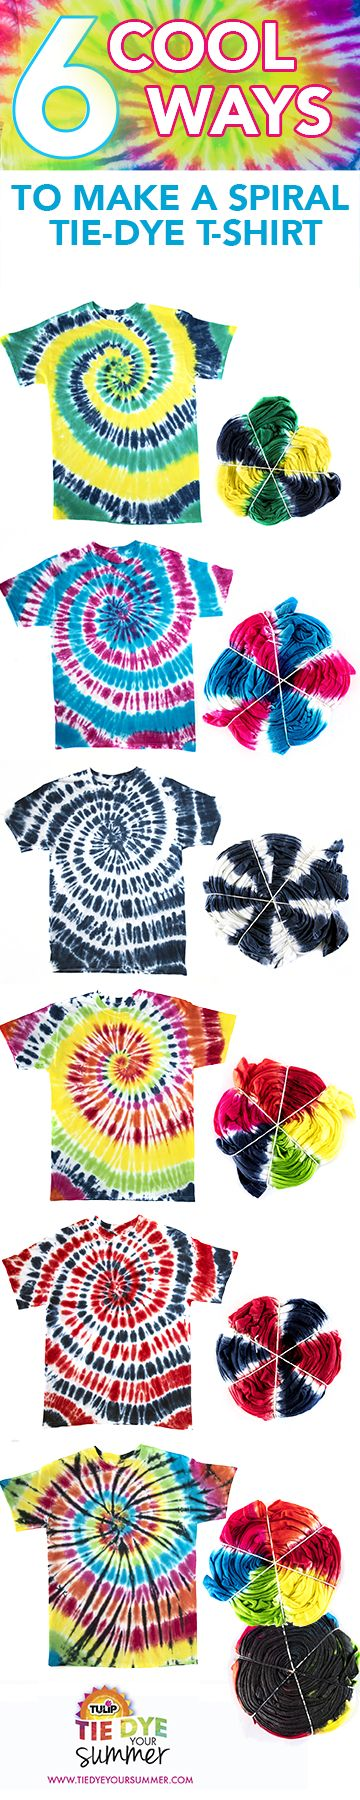 Make up to 90 shirts with this epic tie dye kit filled to max with ...